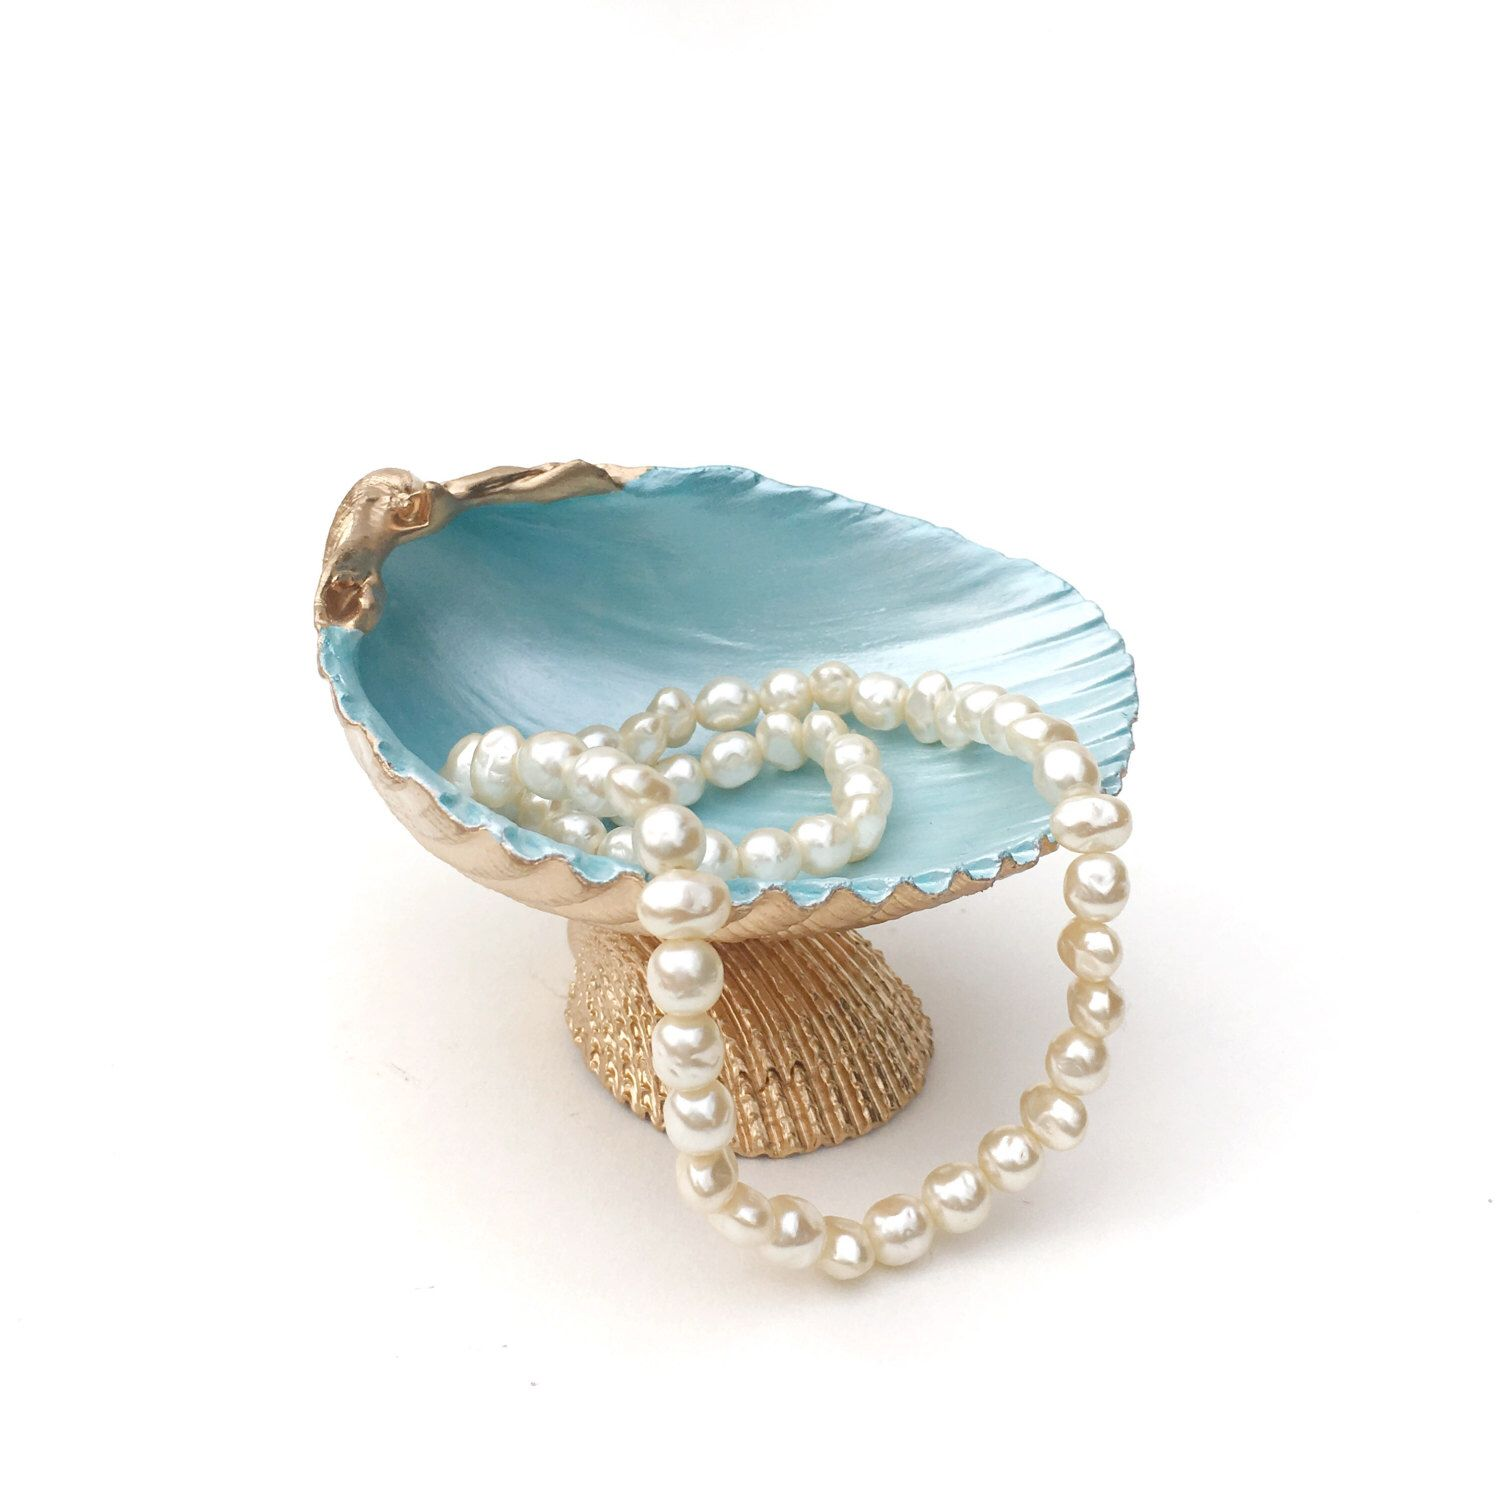 Ring Dish Beach Decor Seashell Ring Holder Trinket Dish